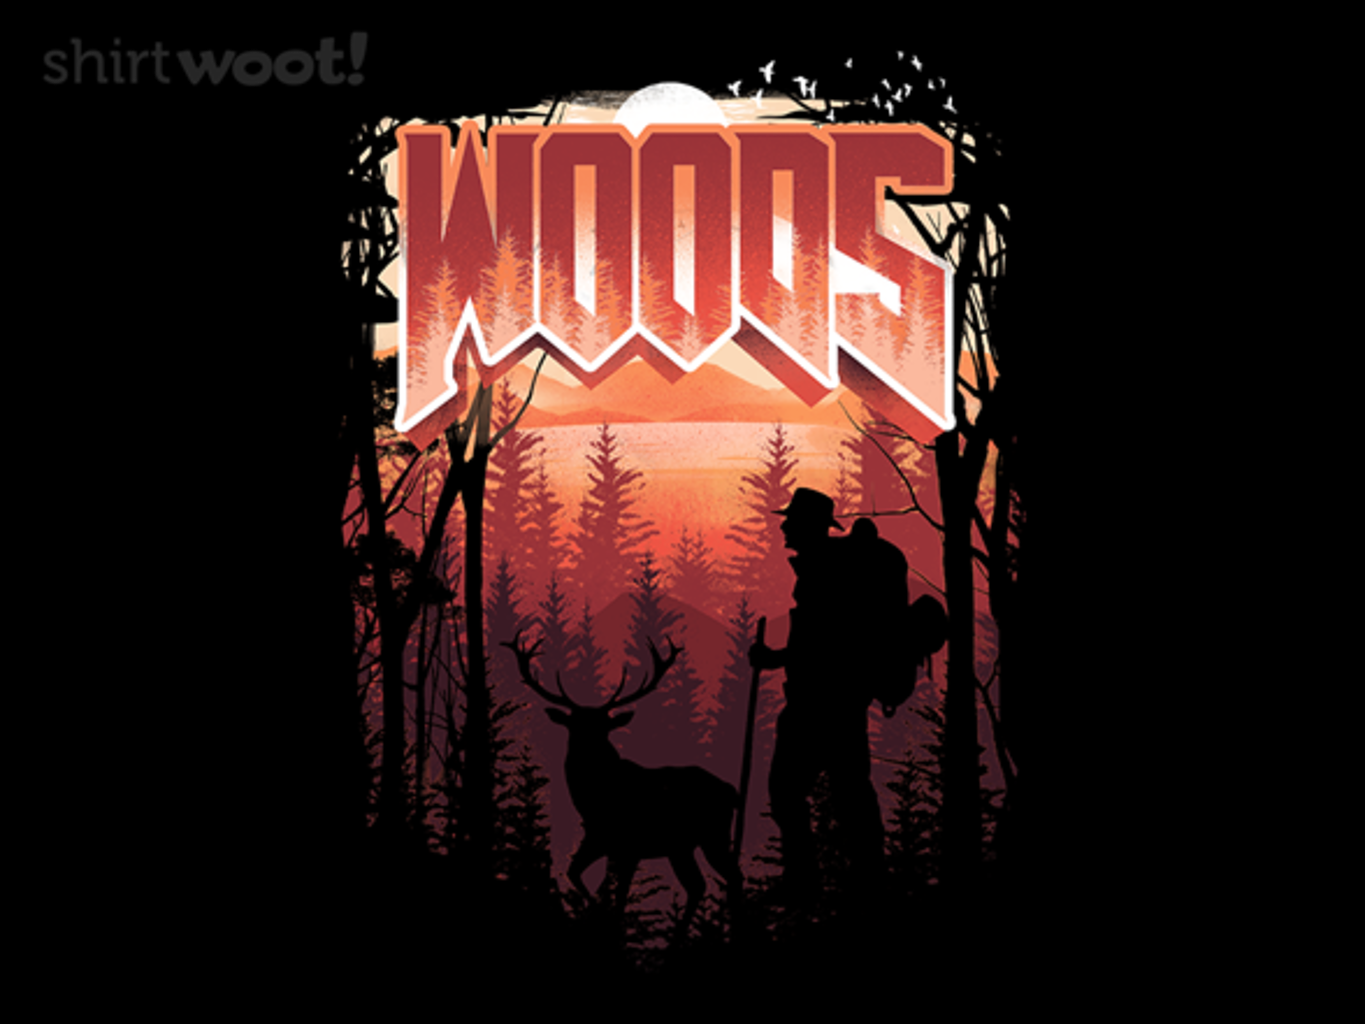 Woot!: Woods